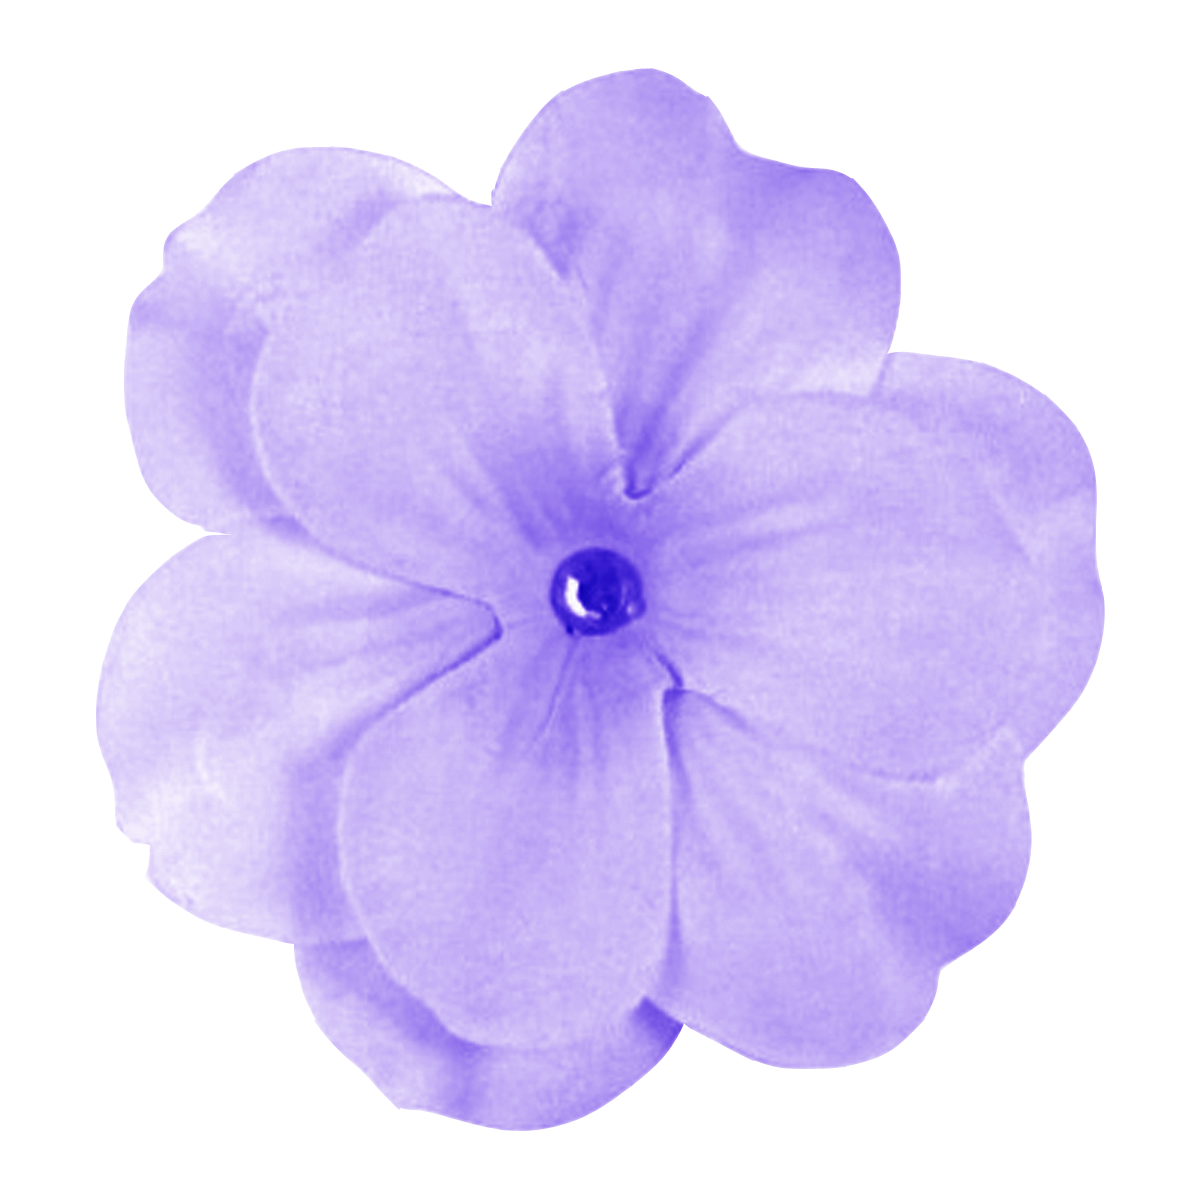 Purple flowers png. Flower transparent pictures free